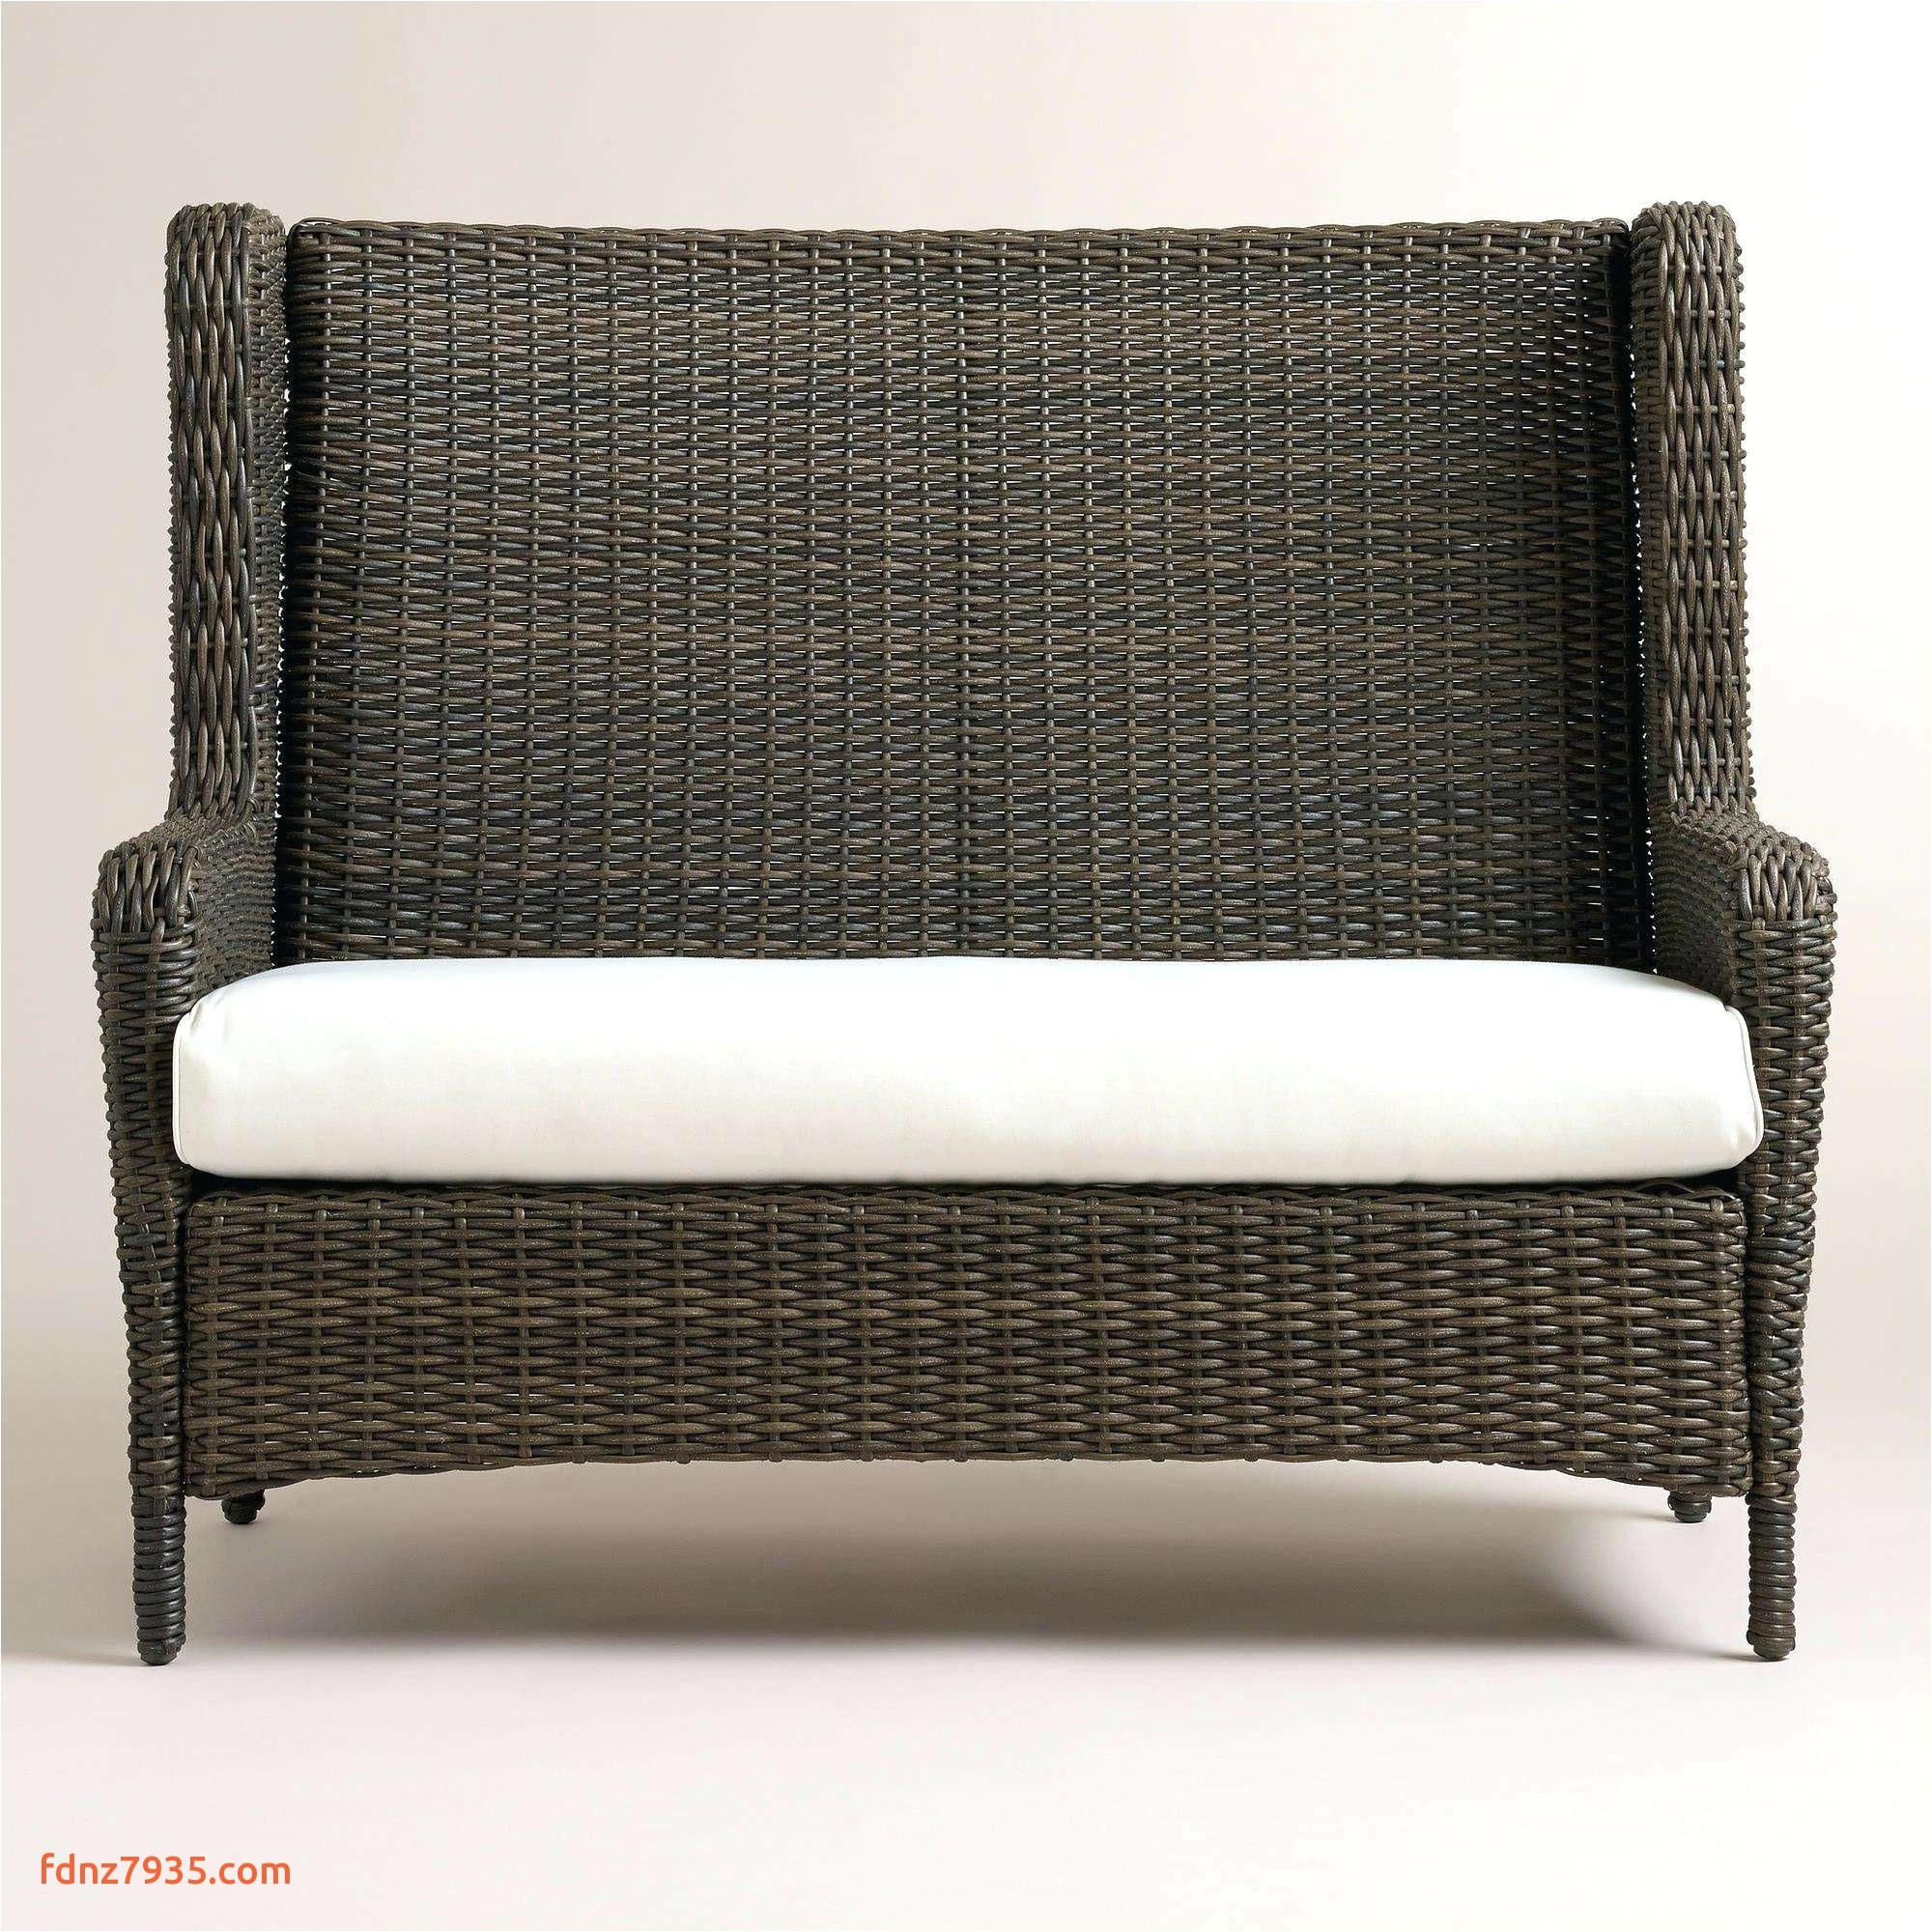 sunbrella outdoor furniture best wicker outdoor sofa 0d patio chairs sale replacement cushions design